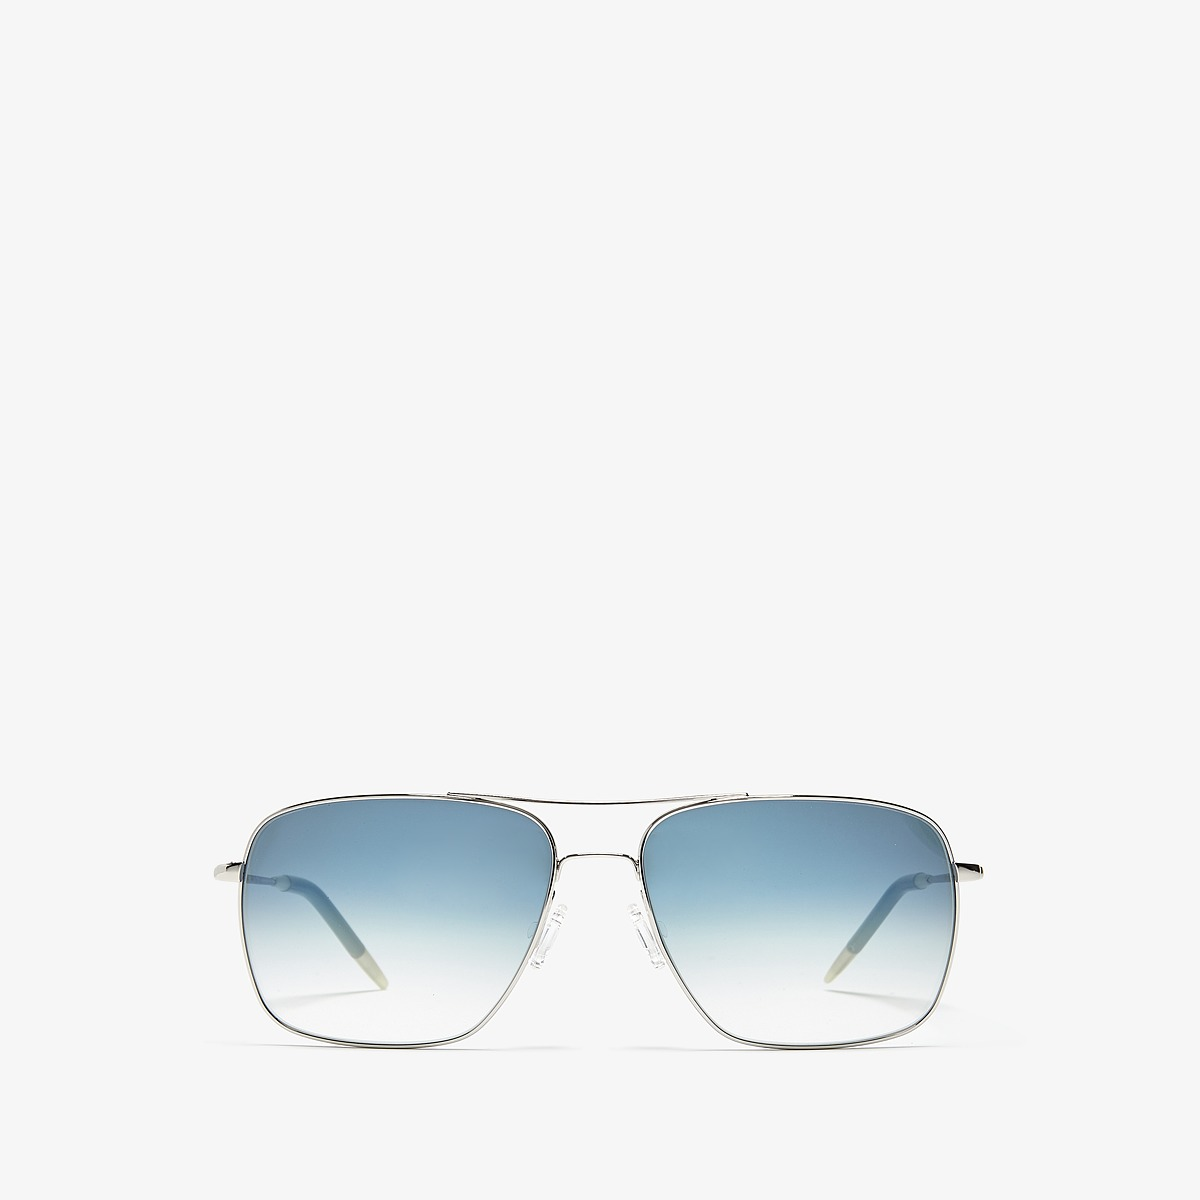 Oliver Peoples Clifton Silver/Chrome Saphire Photochromic Vfx Fashion Sunglasses